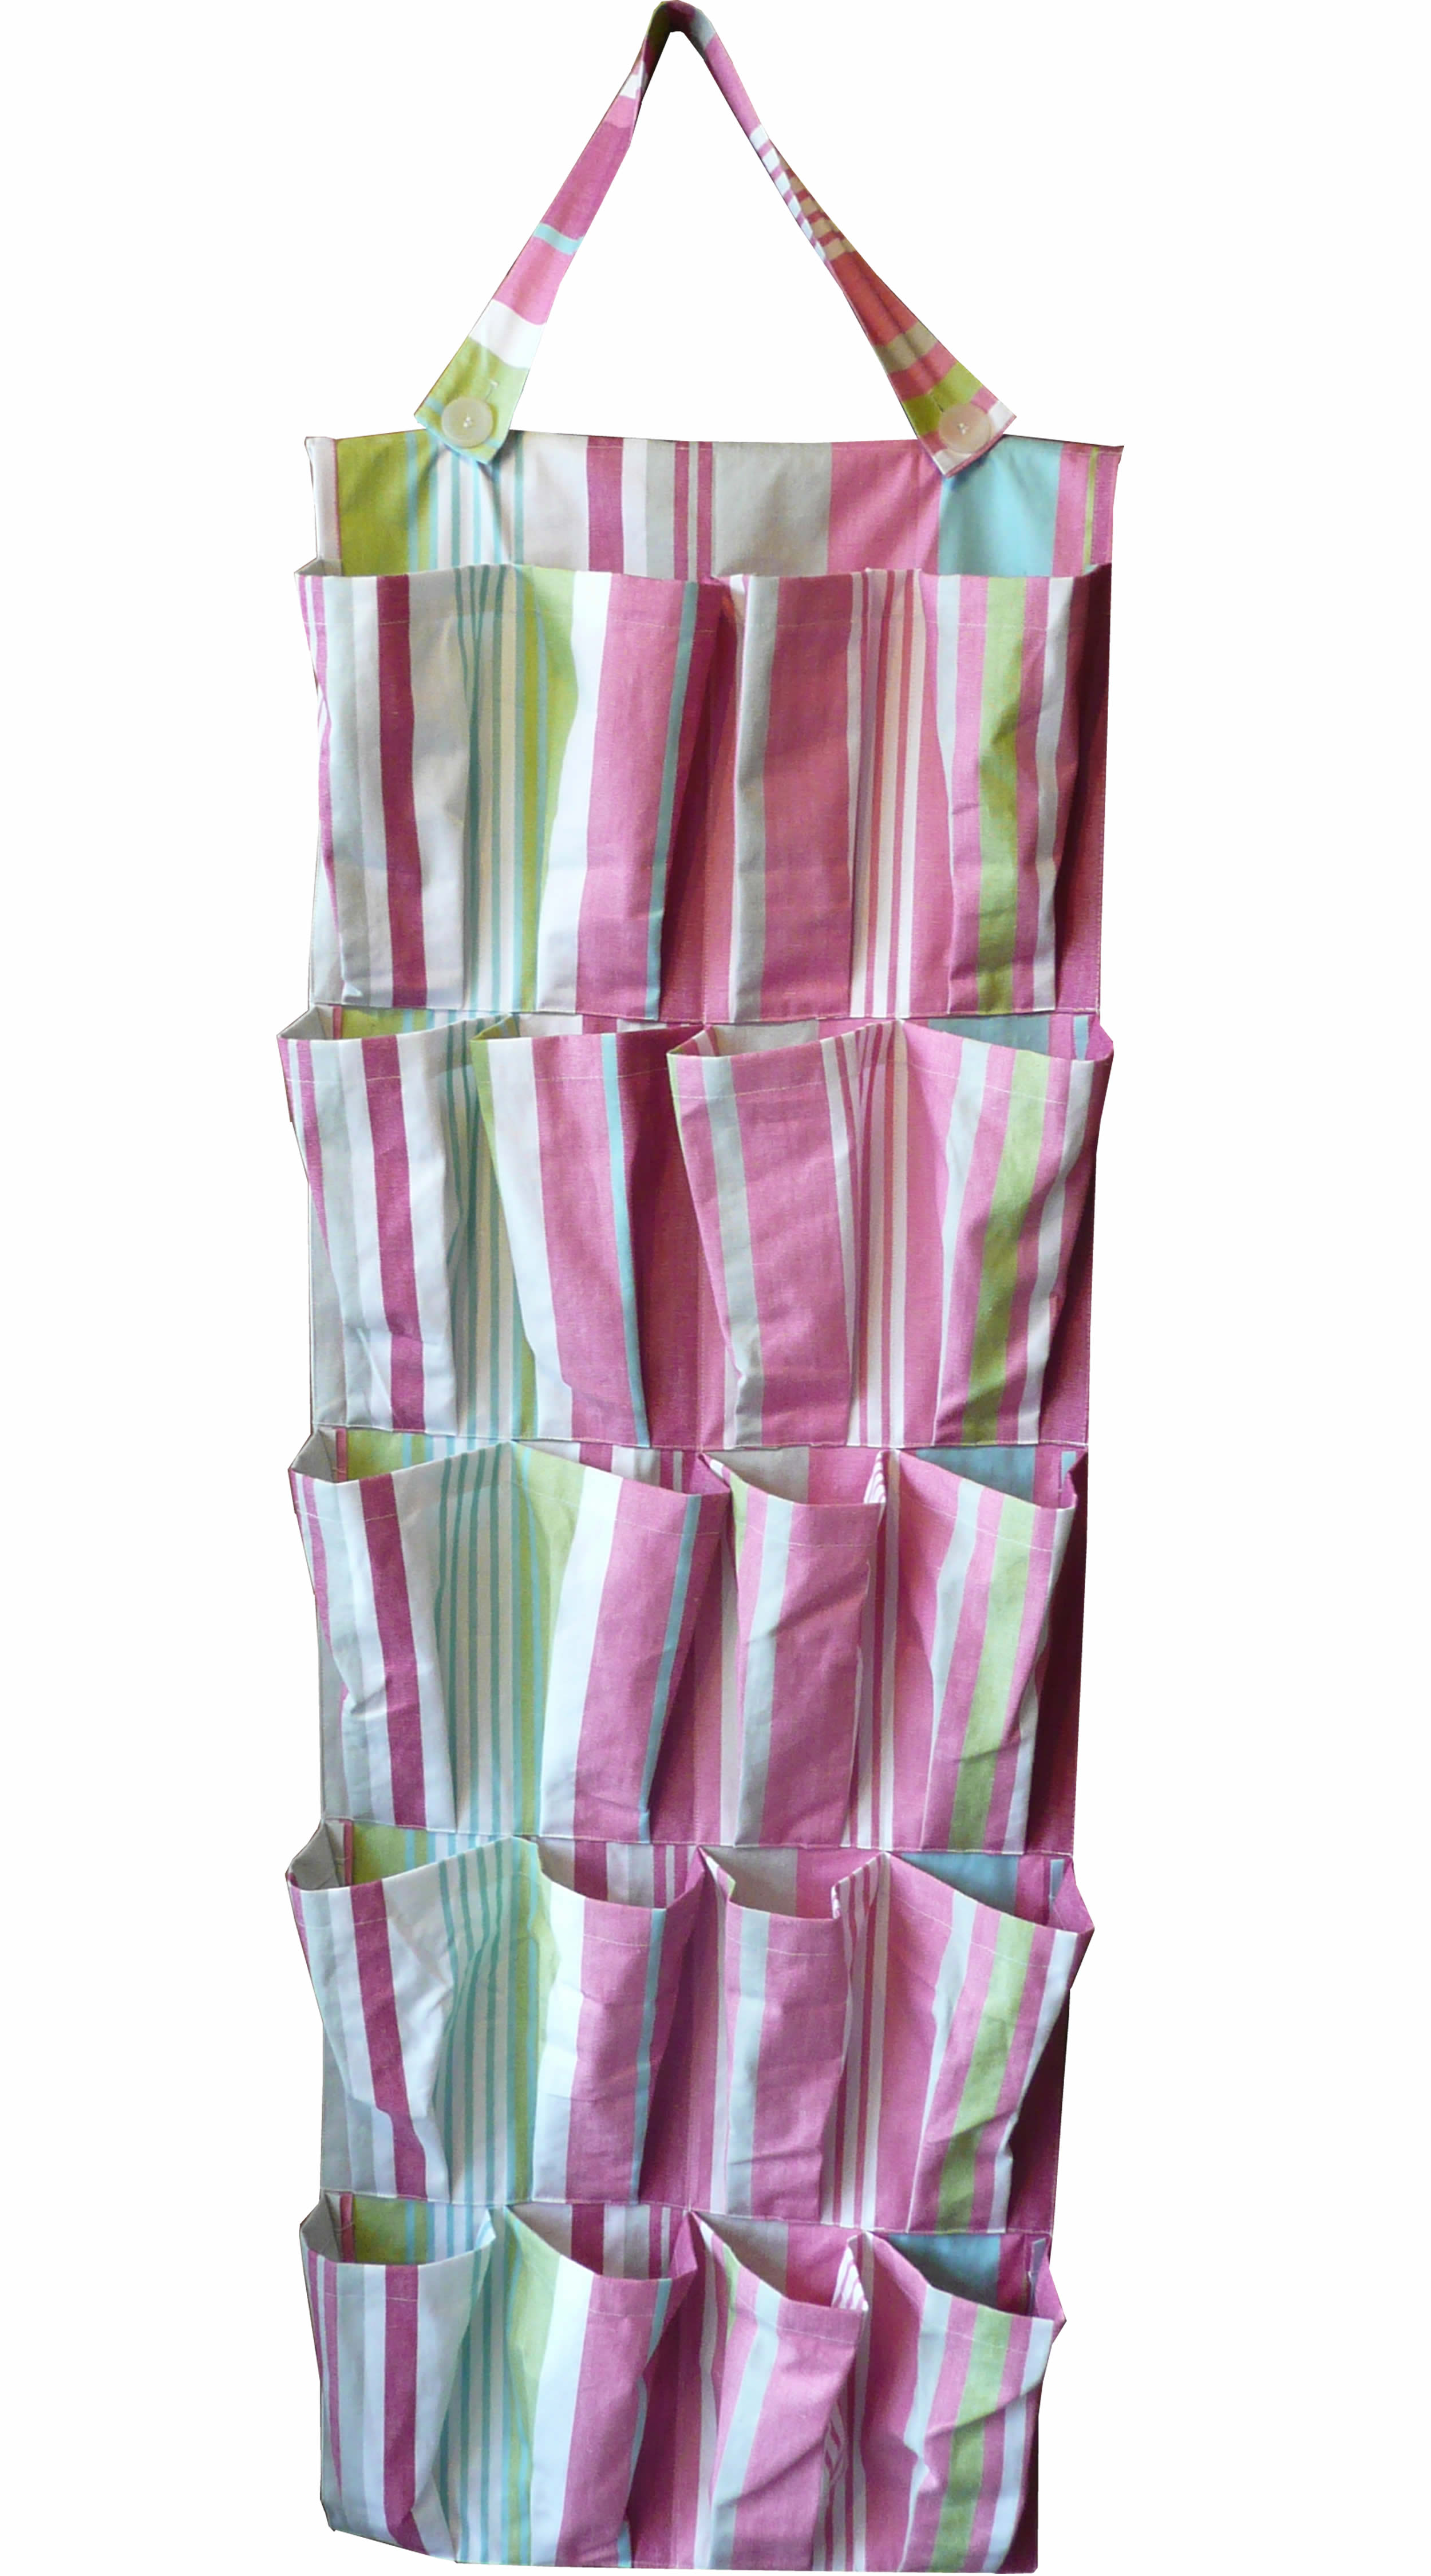 Pink Hanging Pocket Organisers | Hanging Storage Organiser - Riding Stripe